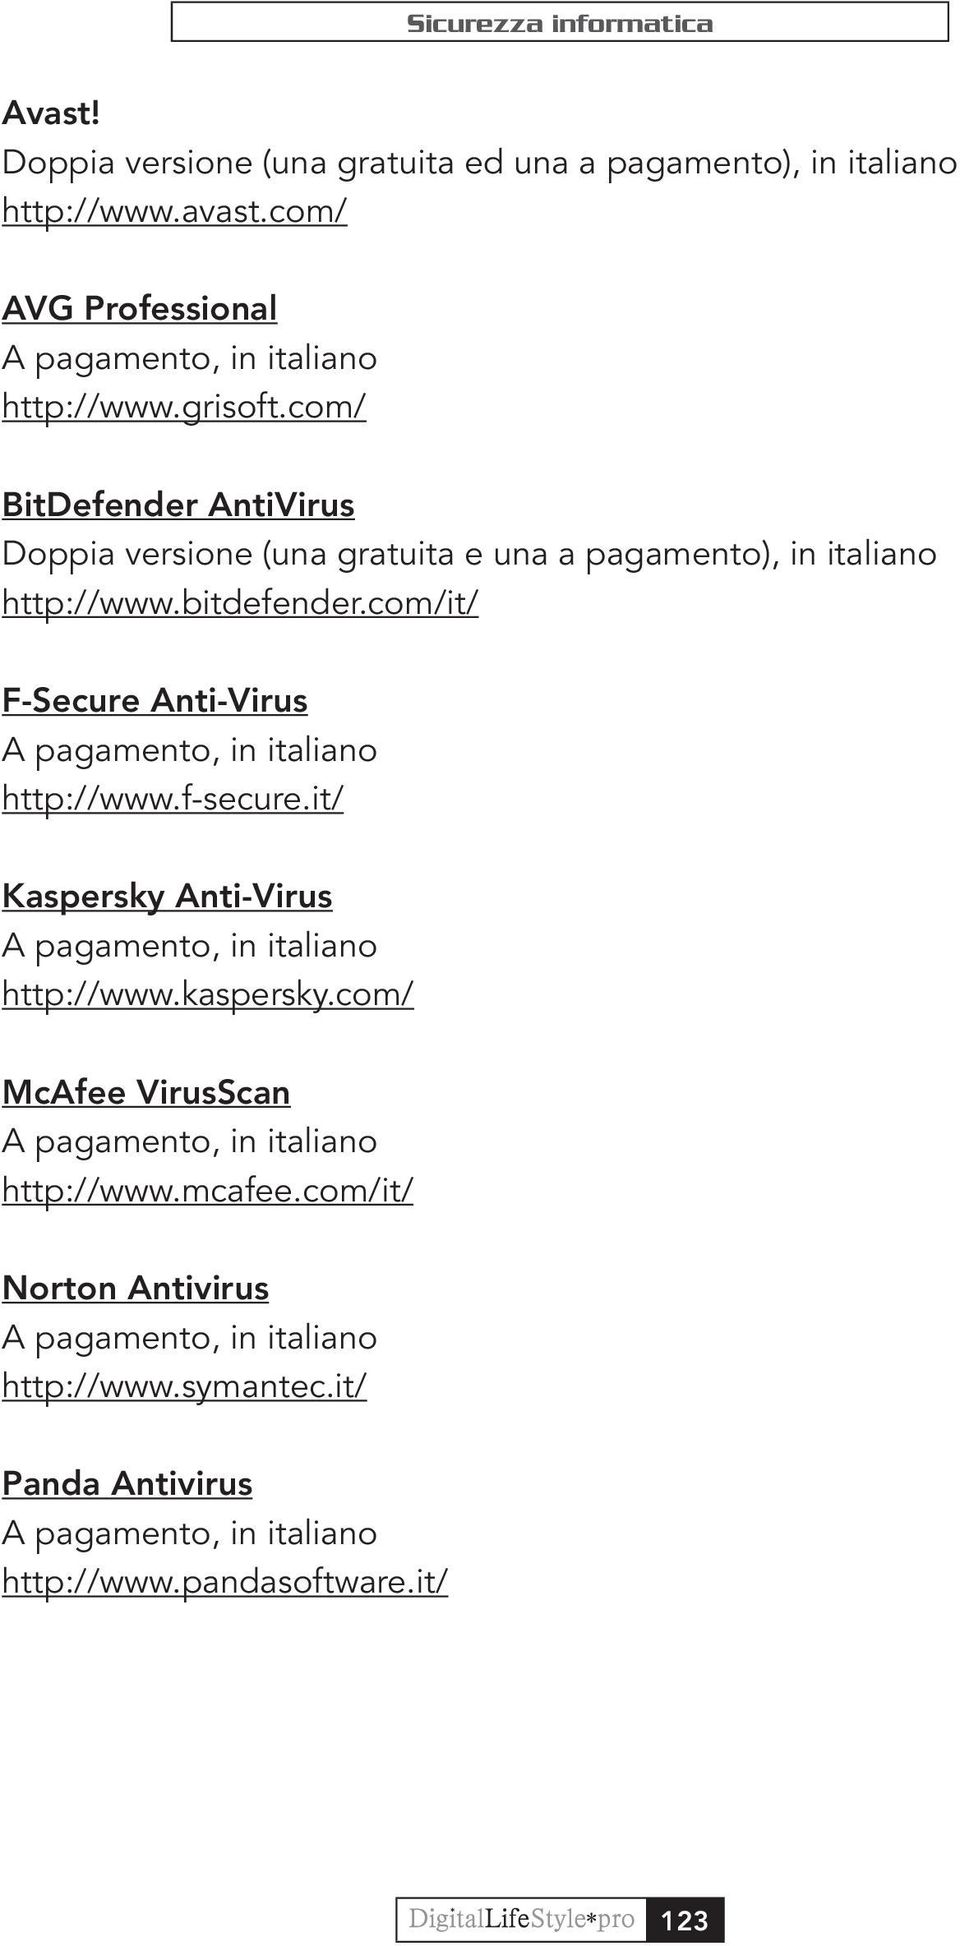 com/it/ F-Secure Anti-Virus A pagamento, in italiano http://www.f-secure.it/ Kaspersky Anti-Virus A pagamento, in italiano http://www.kaspersky.